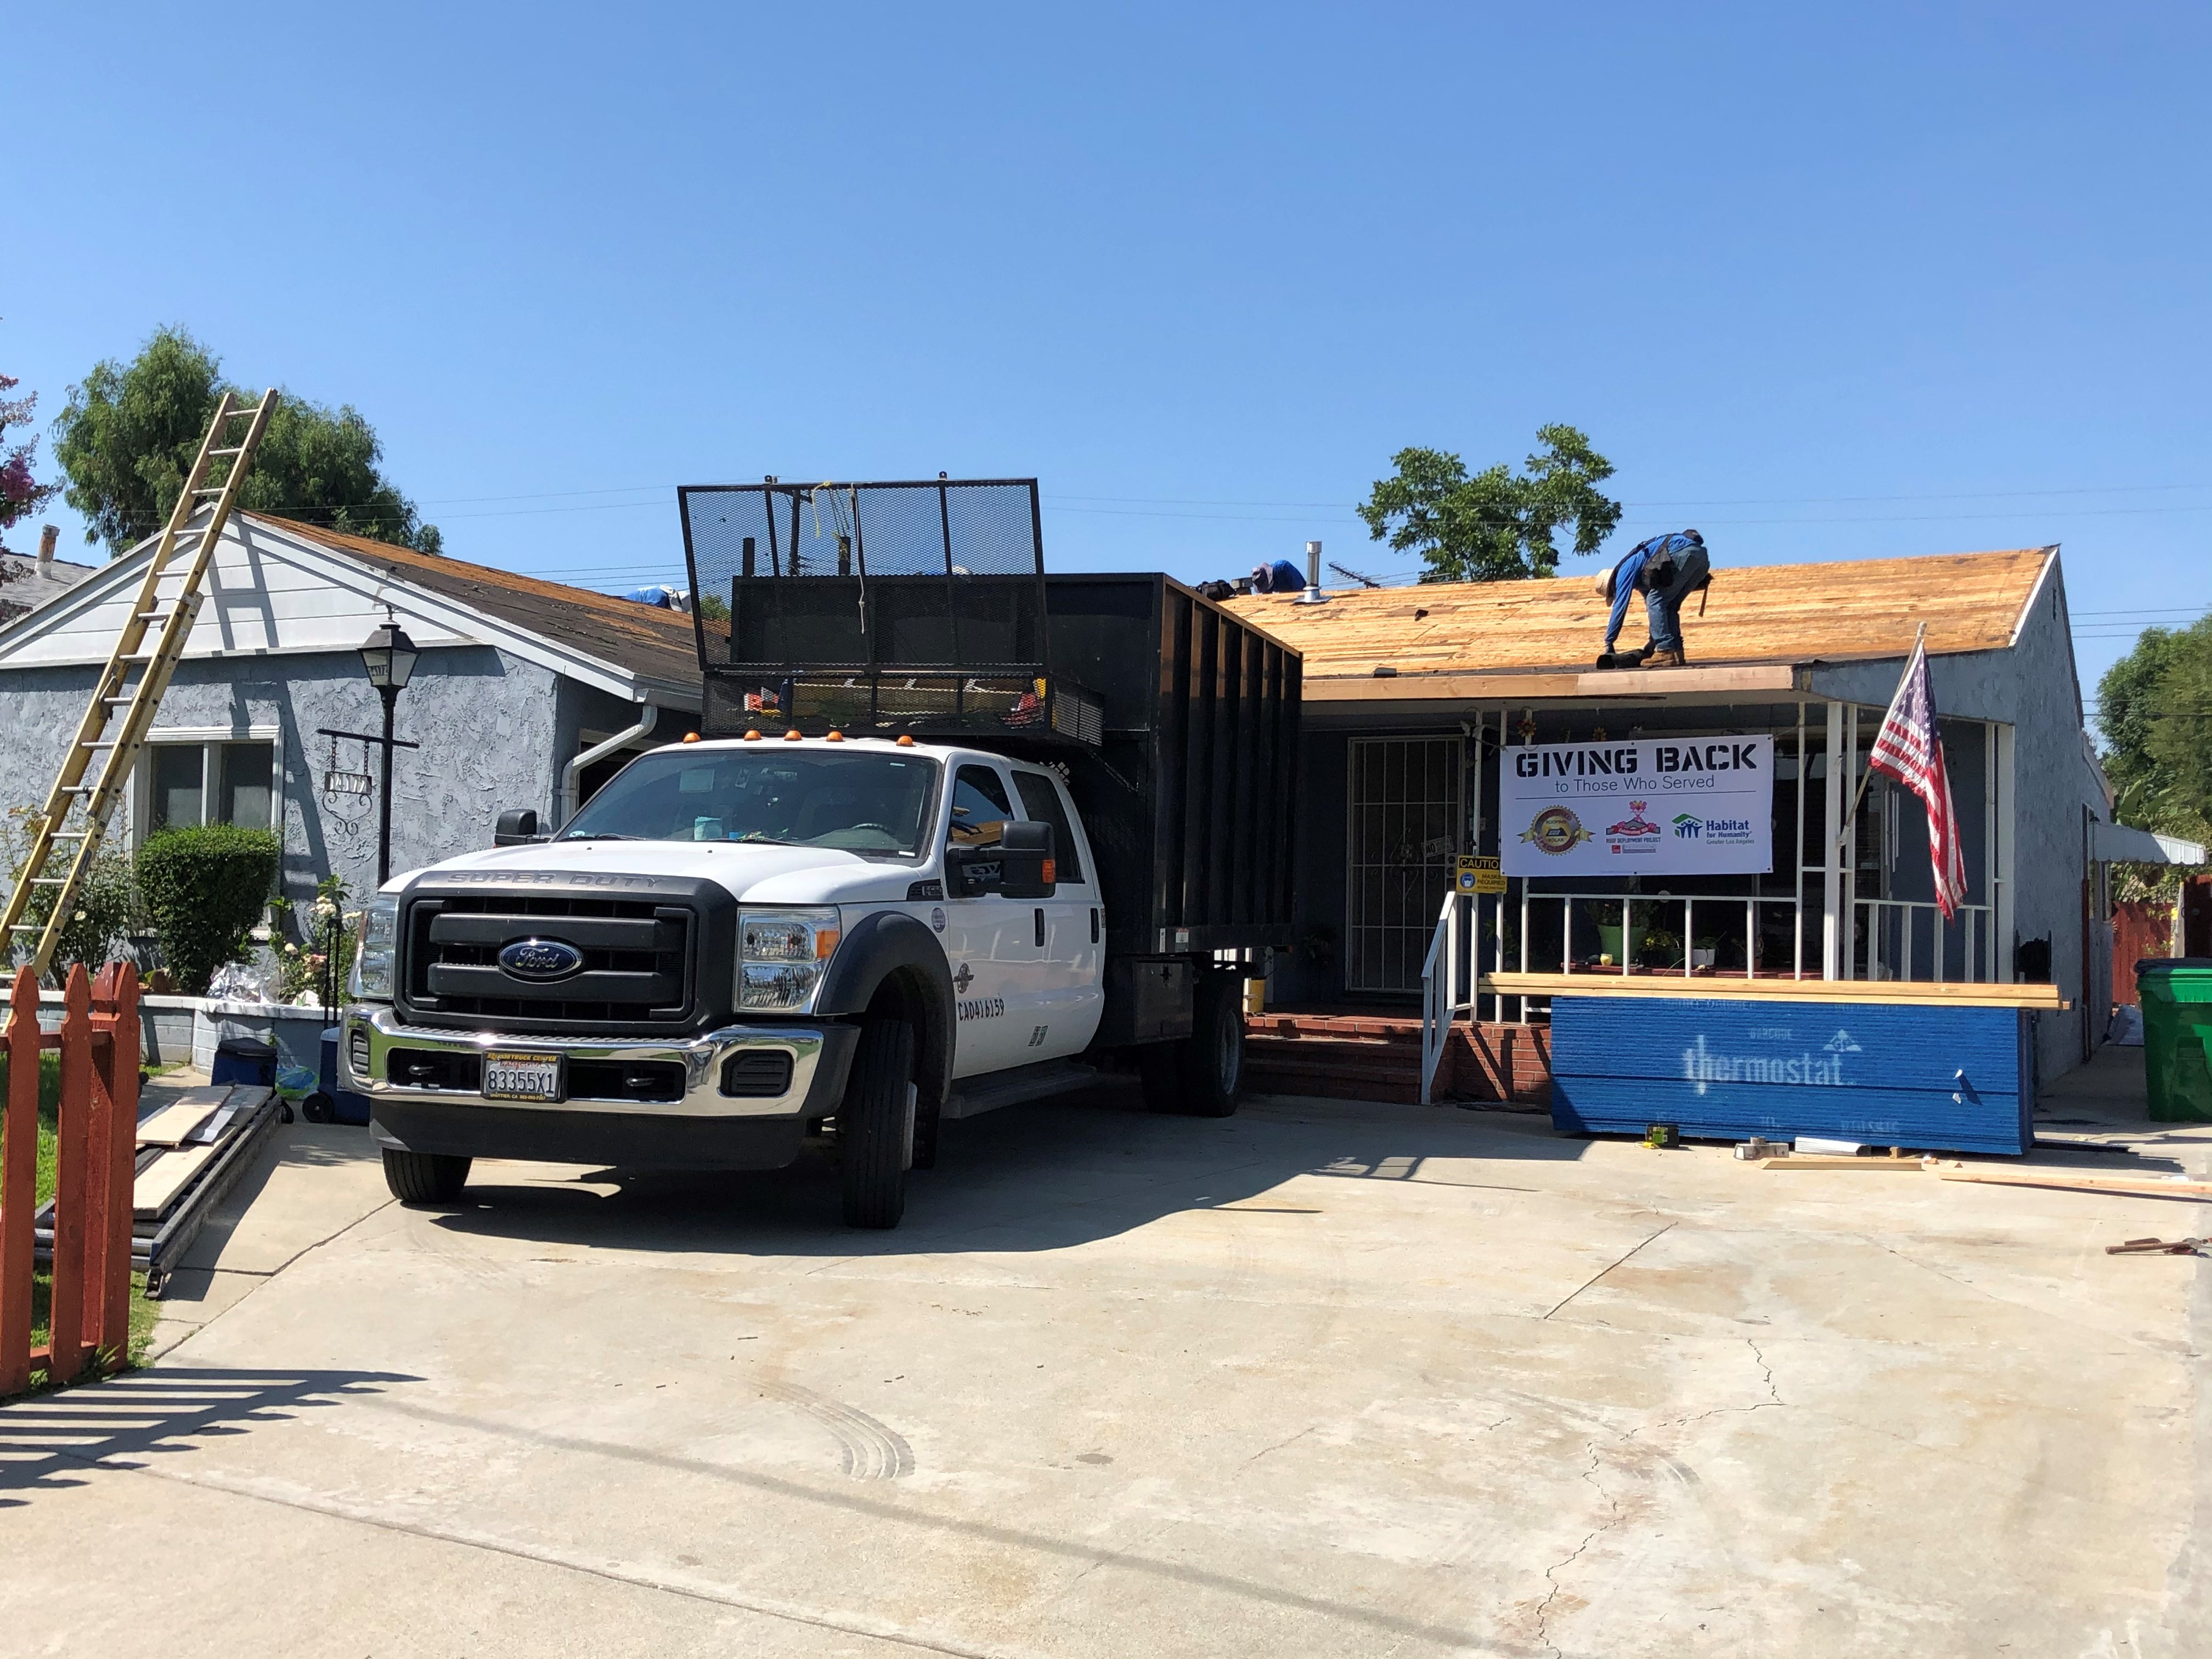 The new roof being build.